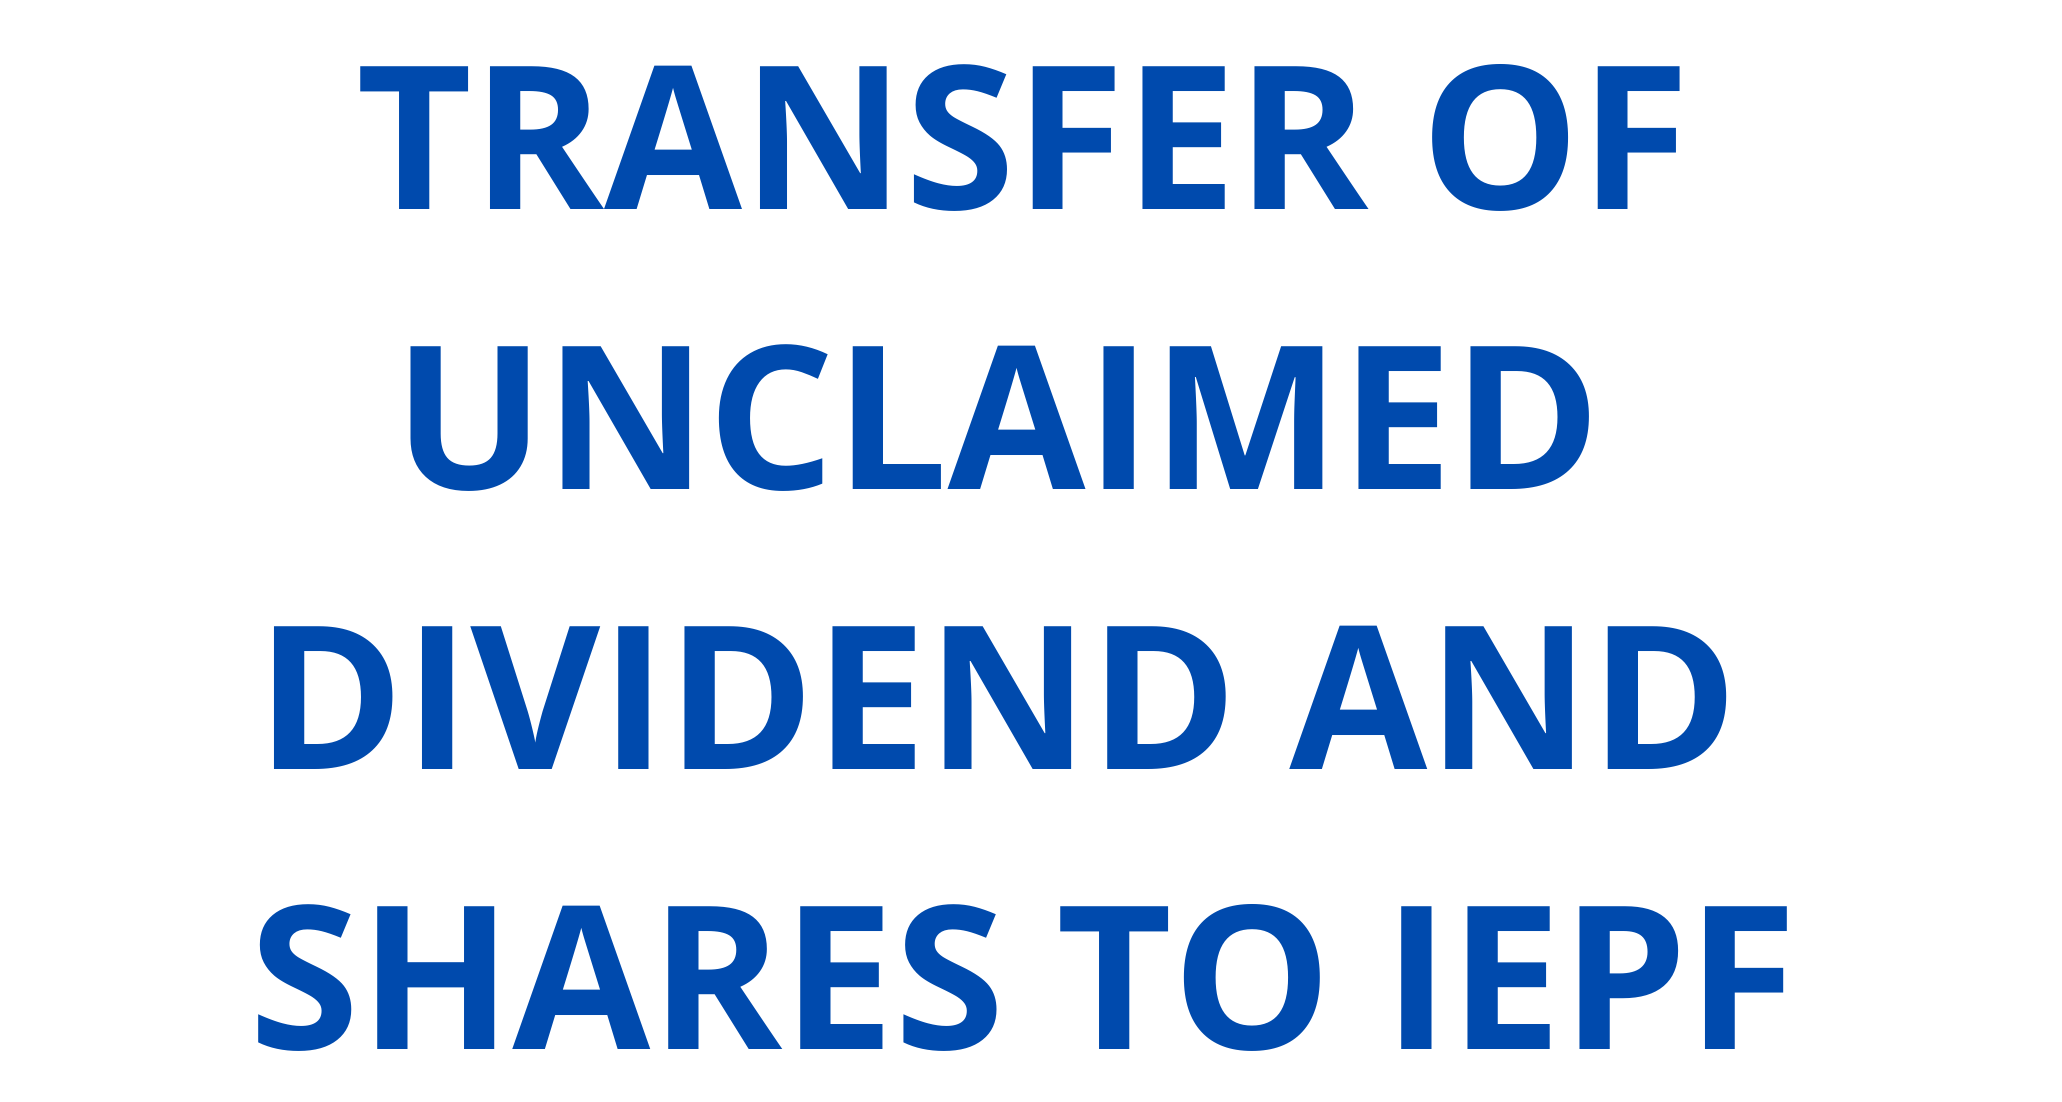 TRANSFER OF UNCLAIMED DIVIDEND AND SHARES TO IEPF